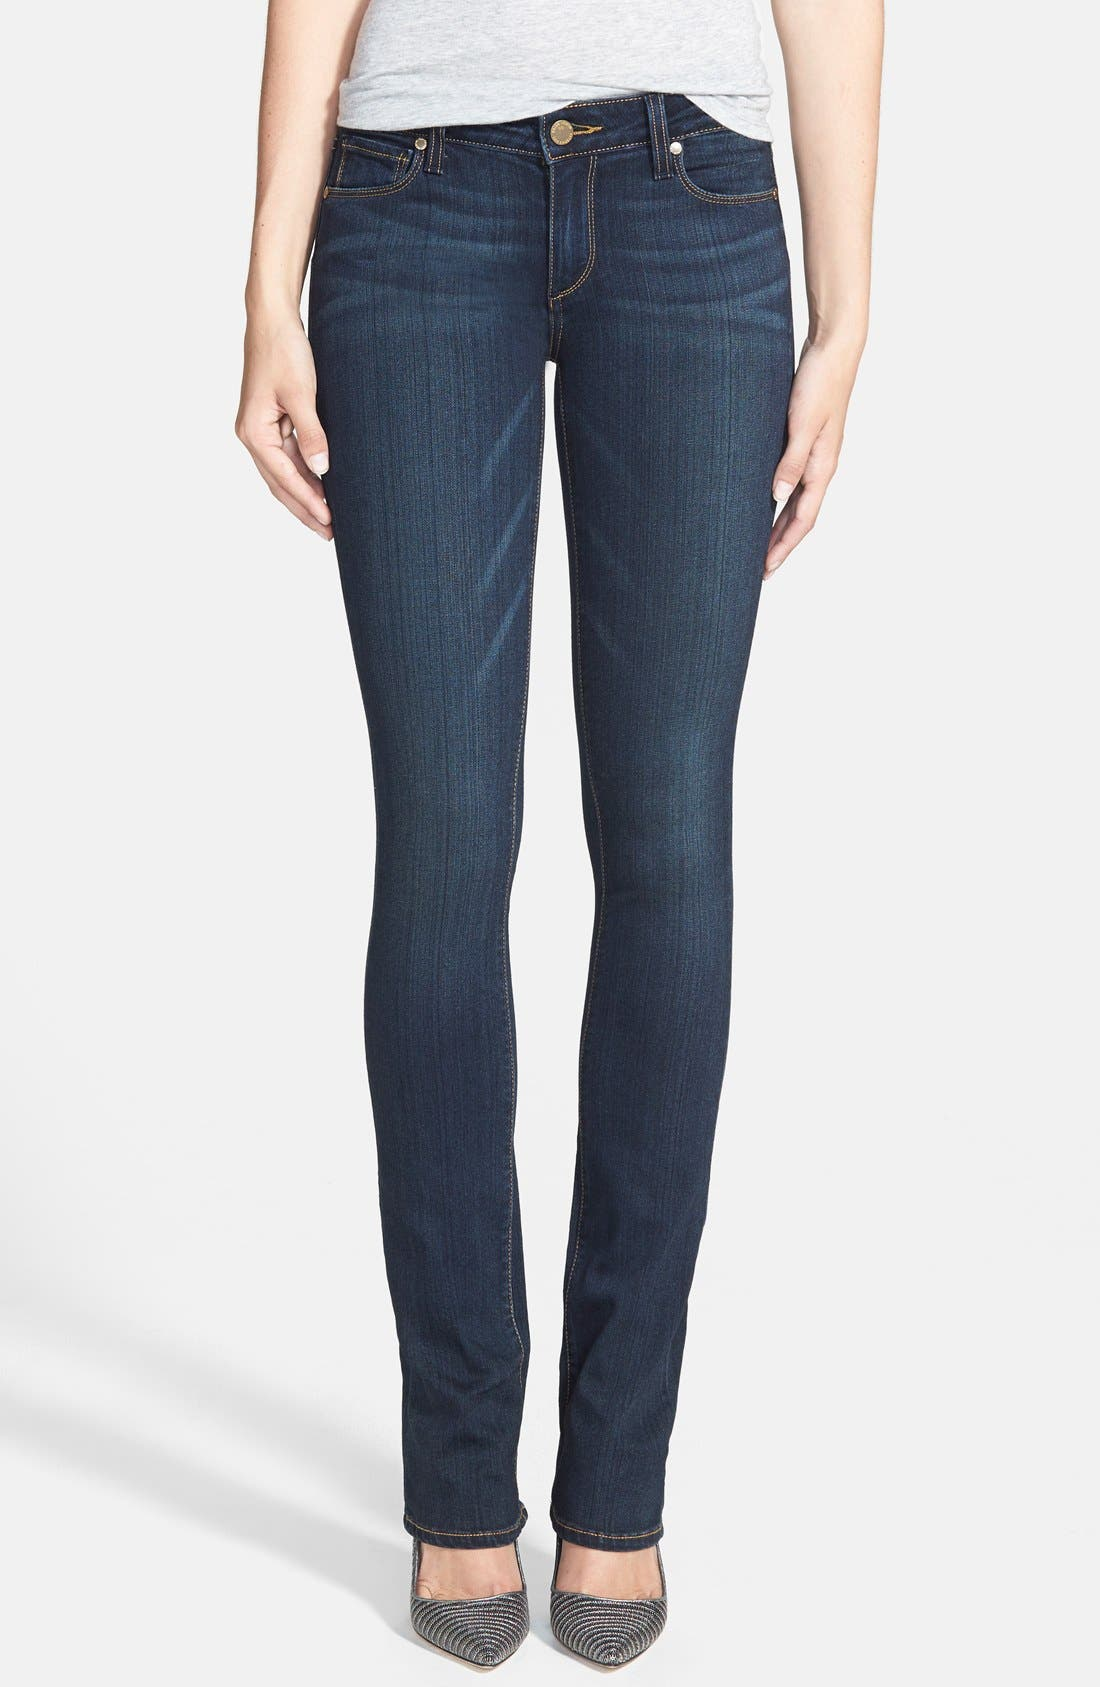 Alternate Image 1 Selected - PAIGE 'Transcend - Manhattan' Bootcut Jeans (Armstrong)